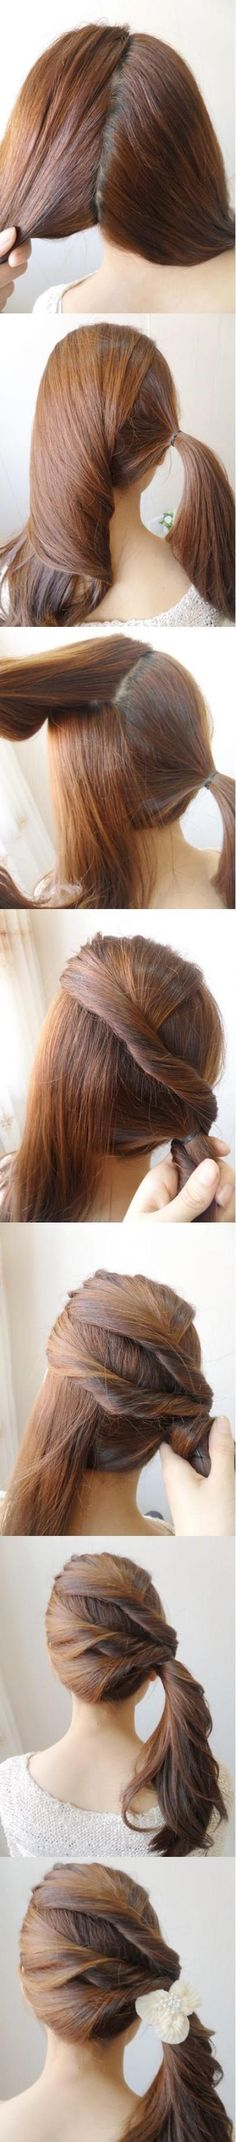 Hair Tutorials | Diy Hair